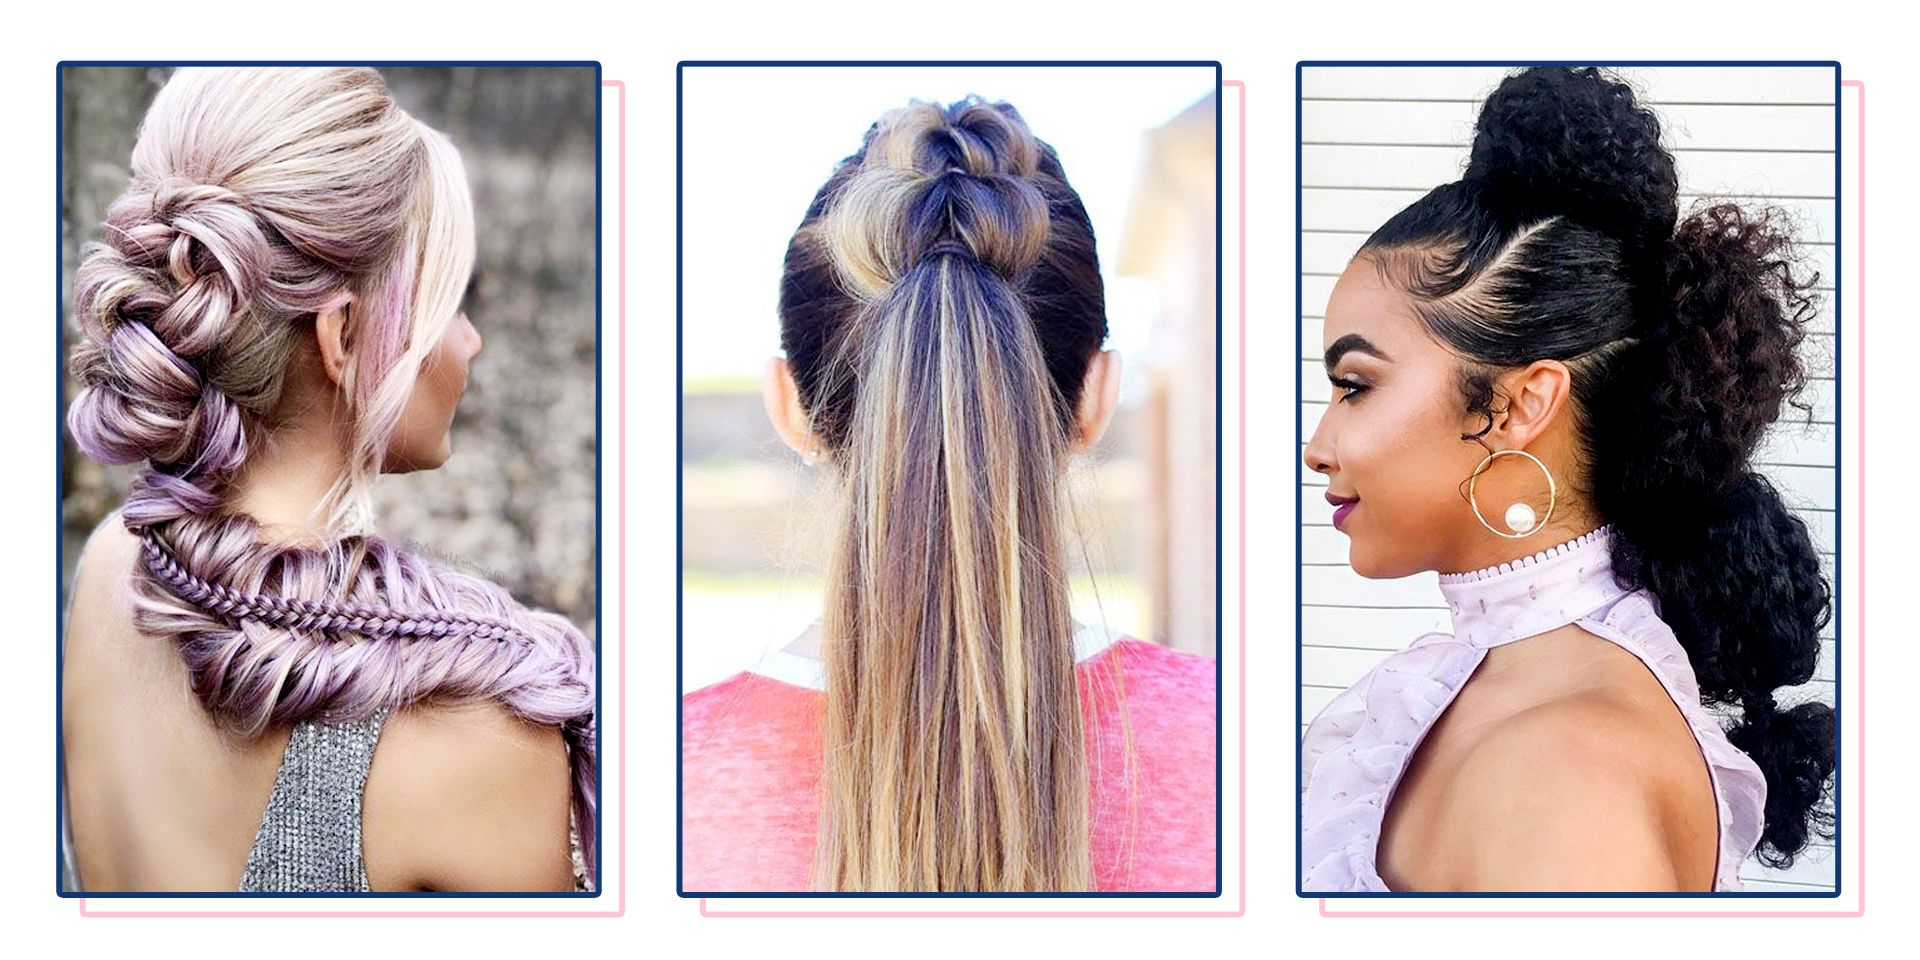 40 Best Prom Updos For 2019 – Easy Prom Updo Hairstyles For Famous Blinged Out Bun Updo Hairstyles (View 6 of 20)